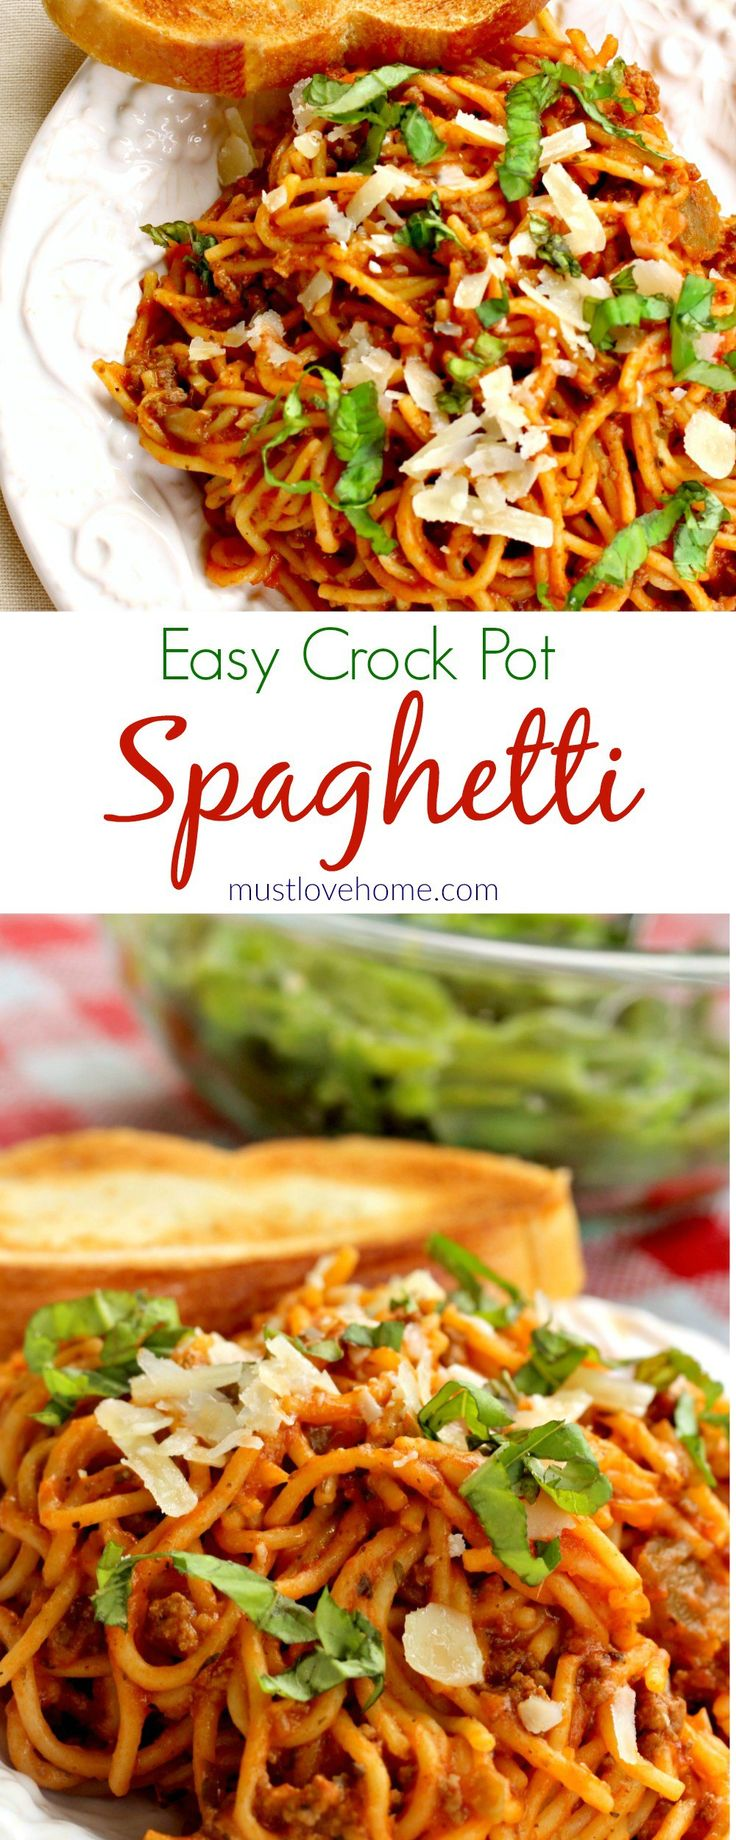 Crock pot recipes with pasta sauce